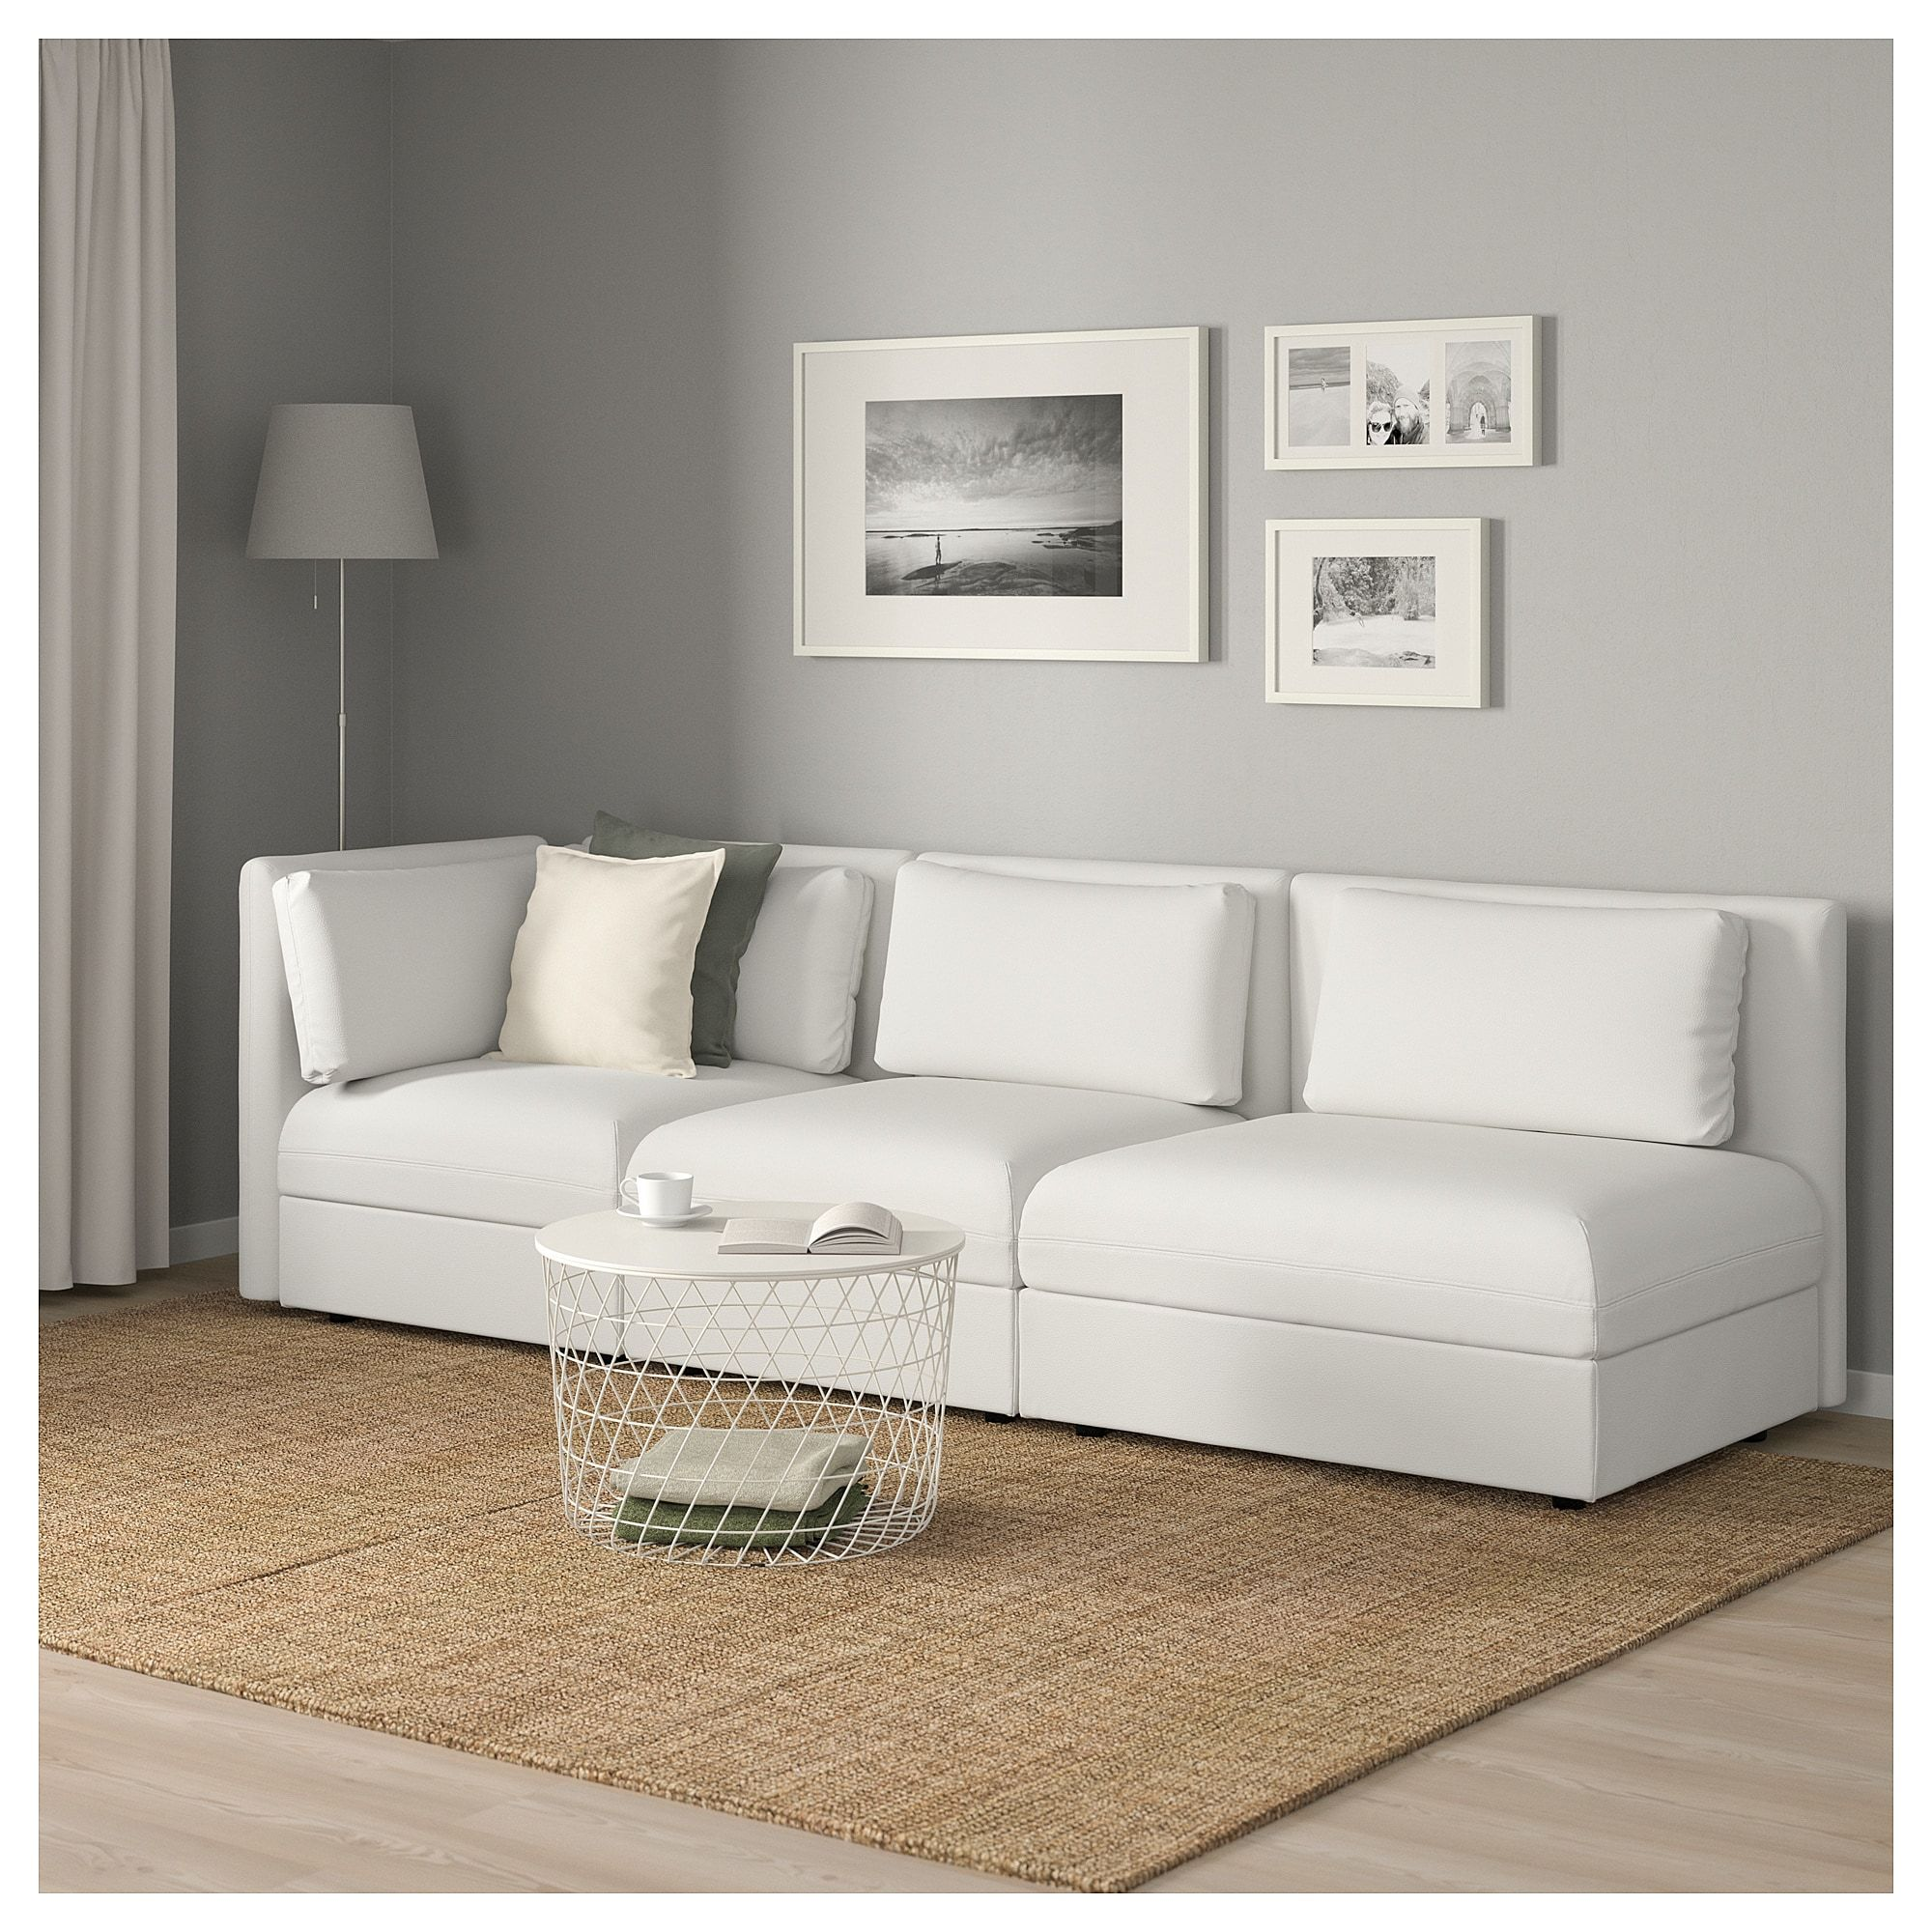 Vallentuna 4 Seat Modular Sofa With 3 Beds Sectional 3 Seat Vallentuna With Open End And Storage Murum